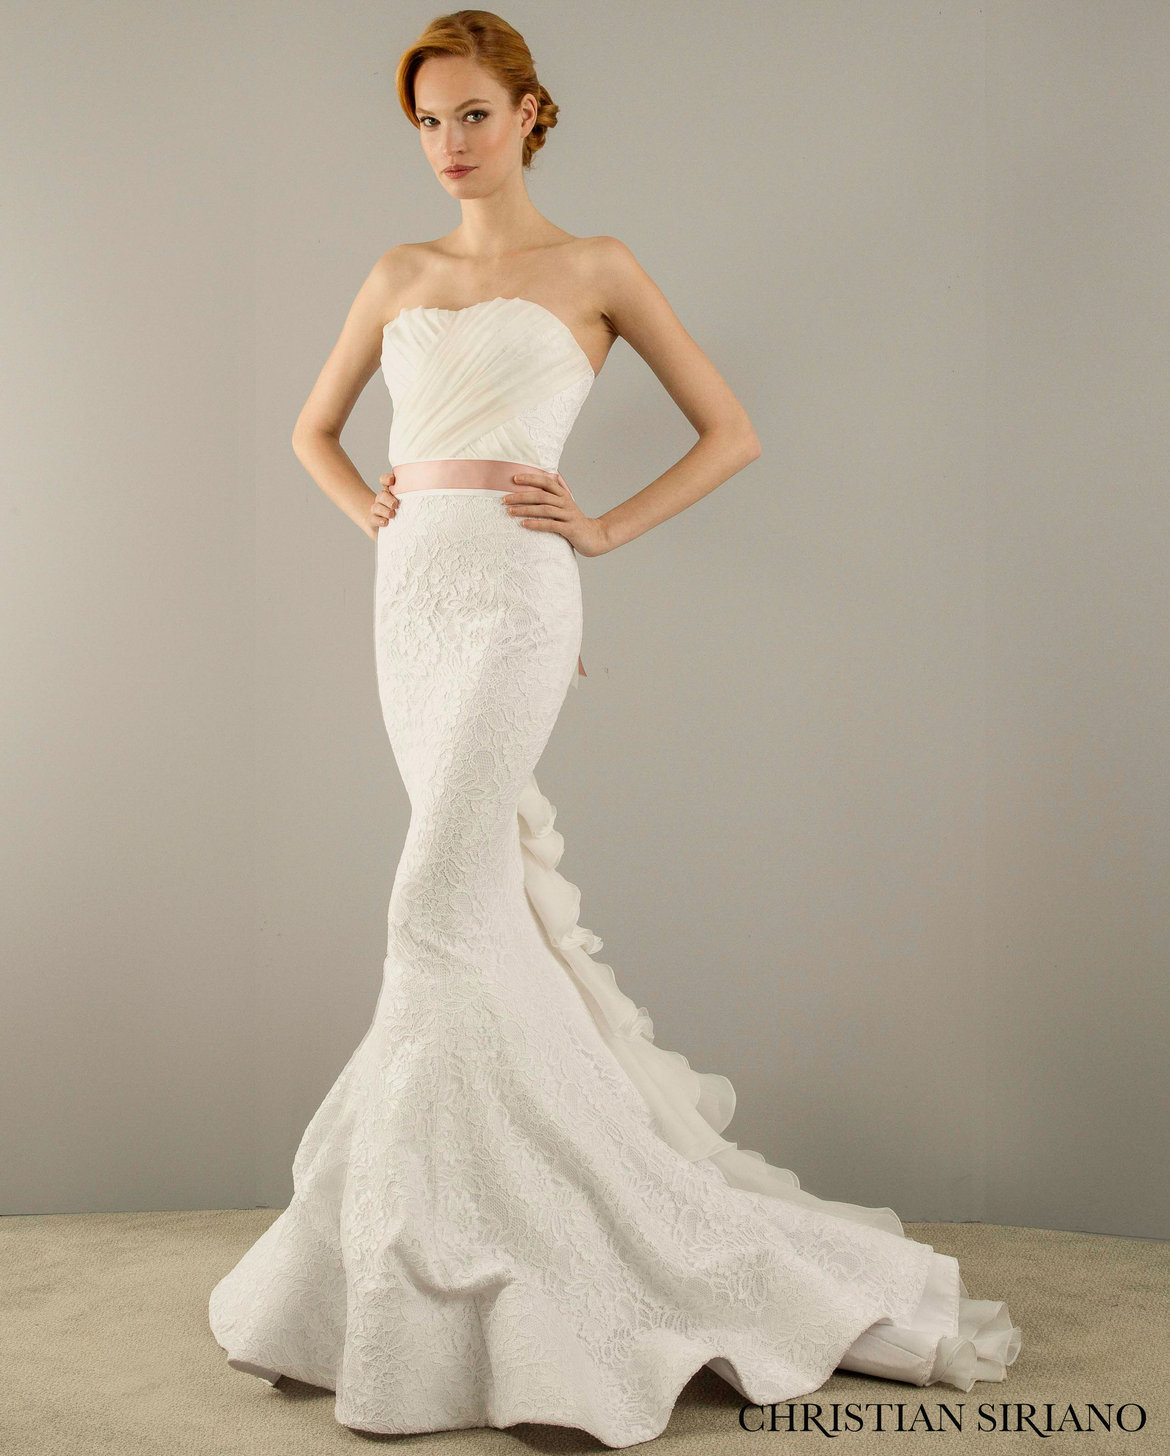 First Look Christian Sirianou0026#39;s New Bridal Collection For Kleinfeld | BridalGuide